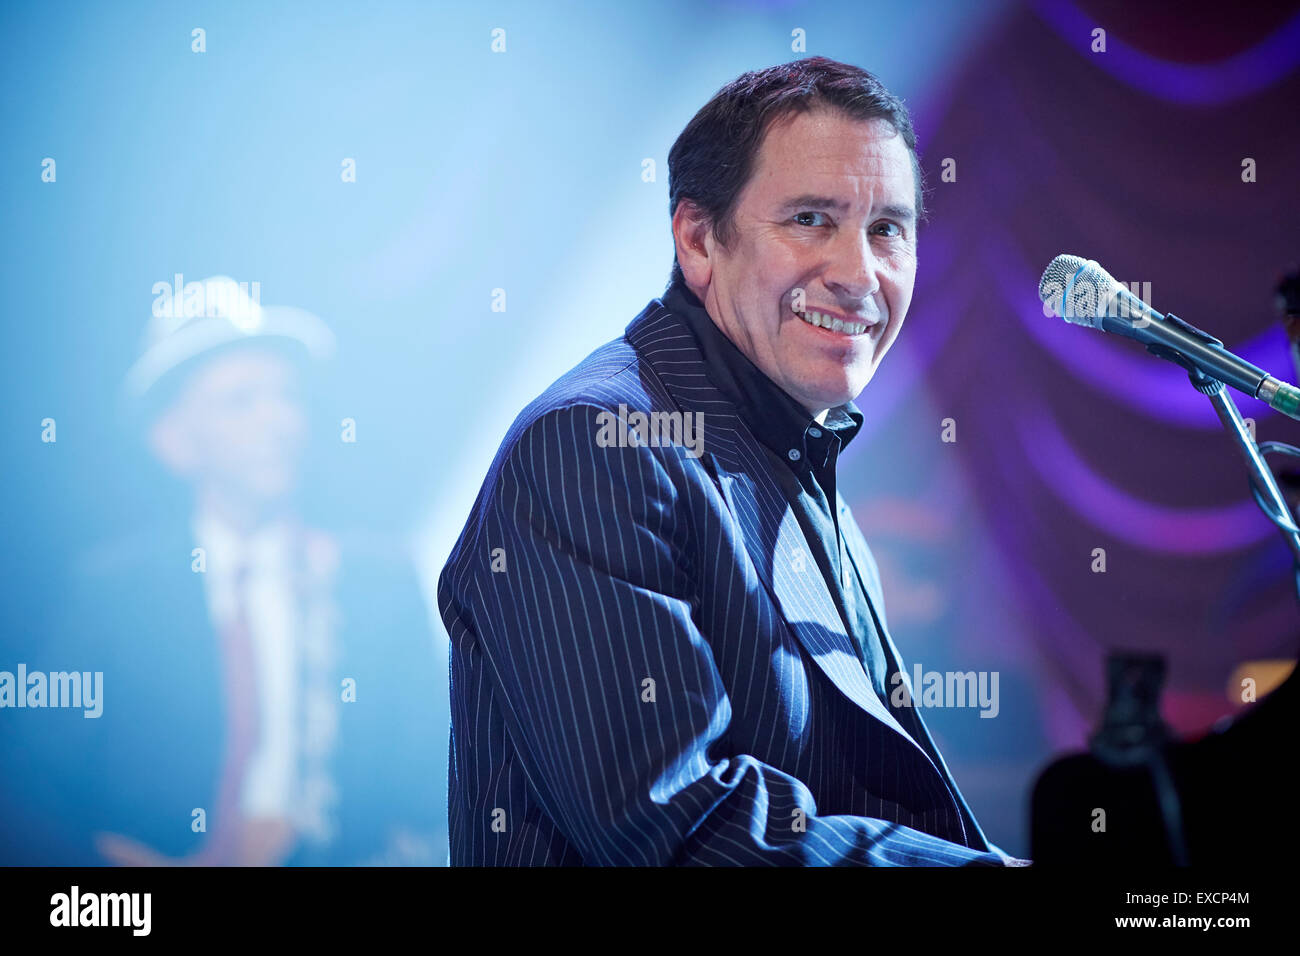 Jools Holland  Big band event at Blackpool's Winter Garden for  BBC television show   On stage at piano event - Stock Image